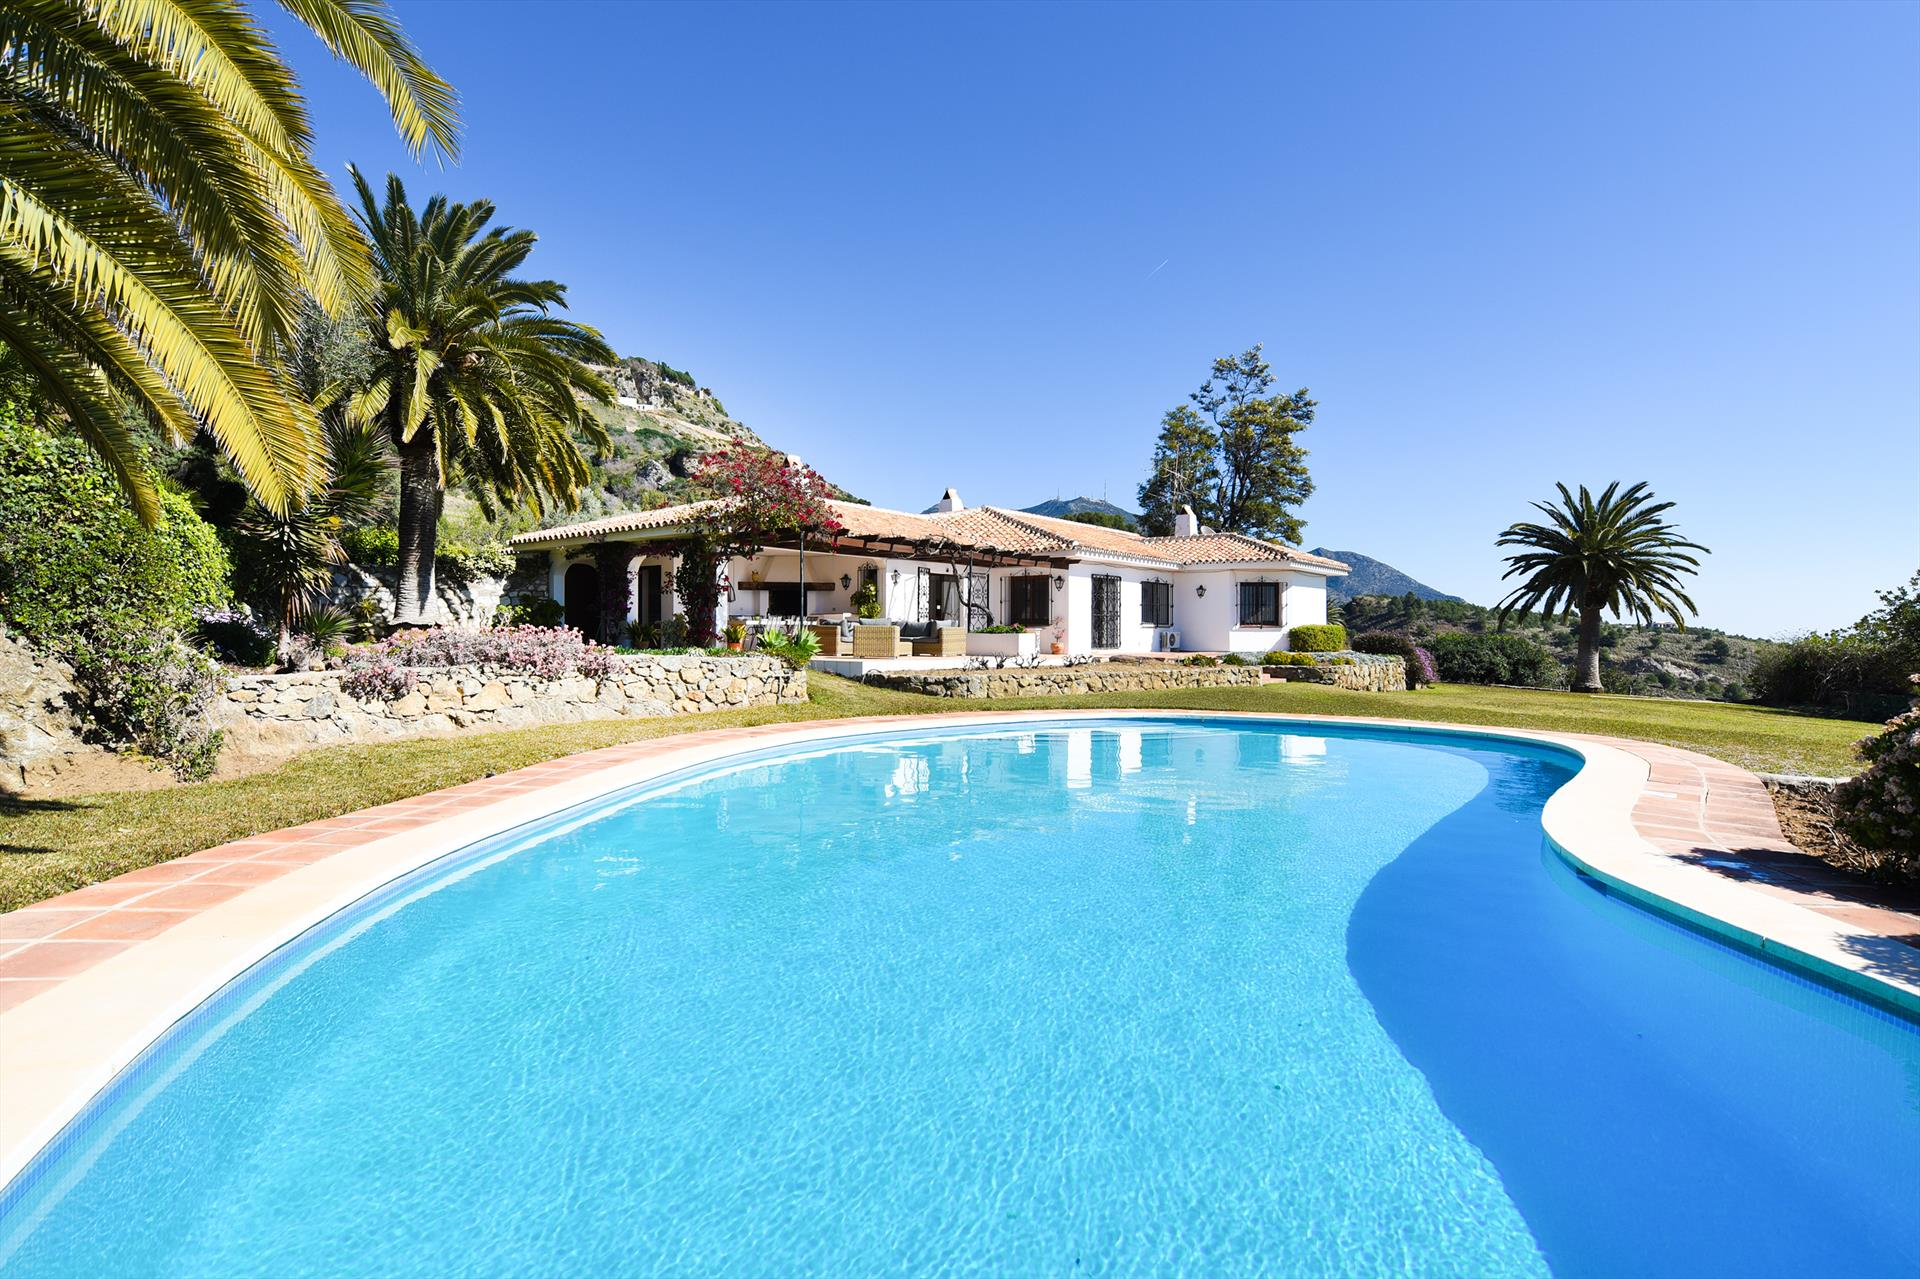 Casa La Fuente, Rustic and comfortable luxury villa in Mijas, Andalusia, Spain  with private pool for 8 persons.....